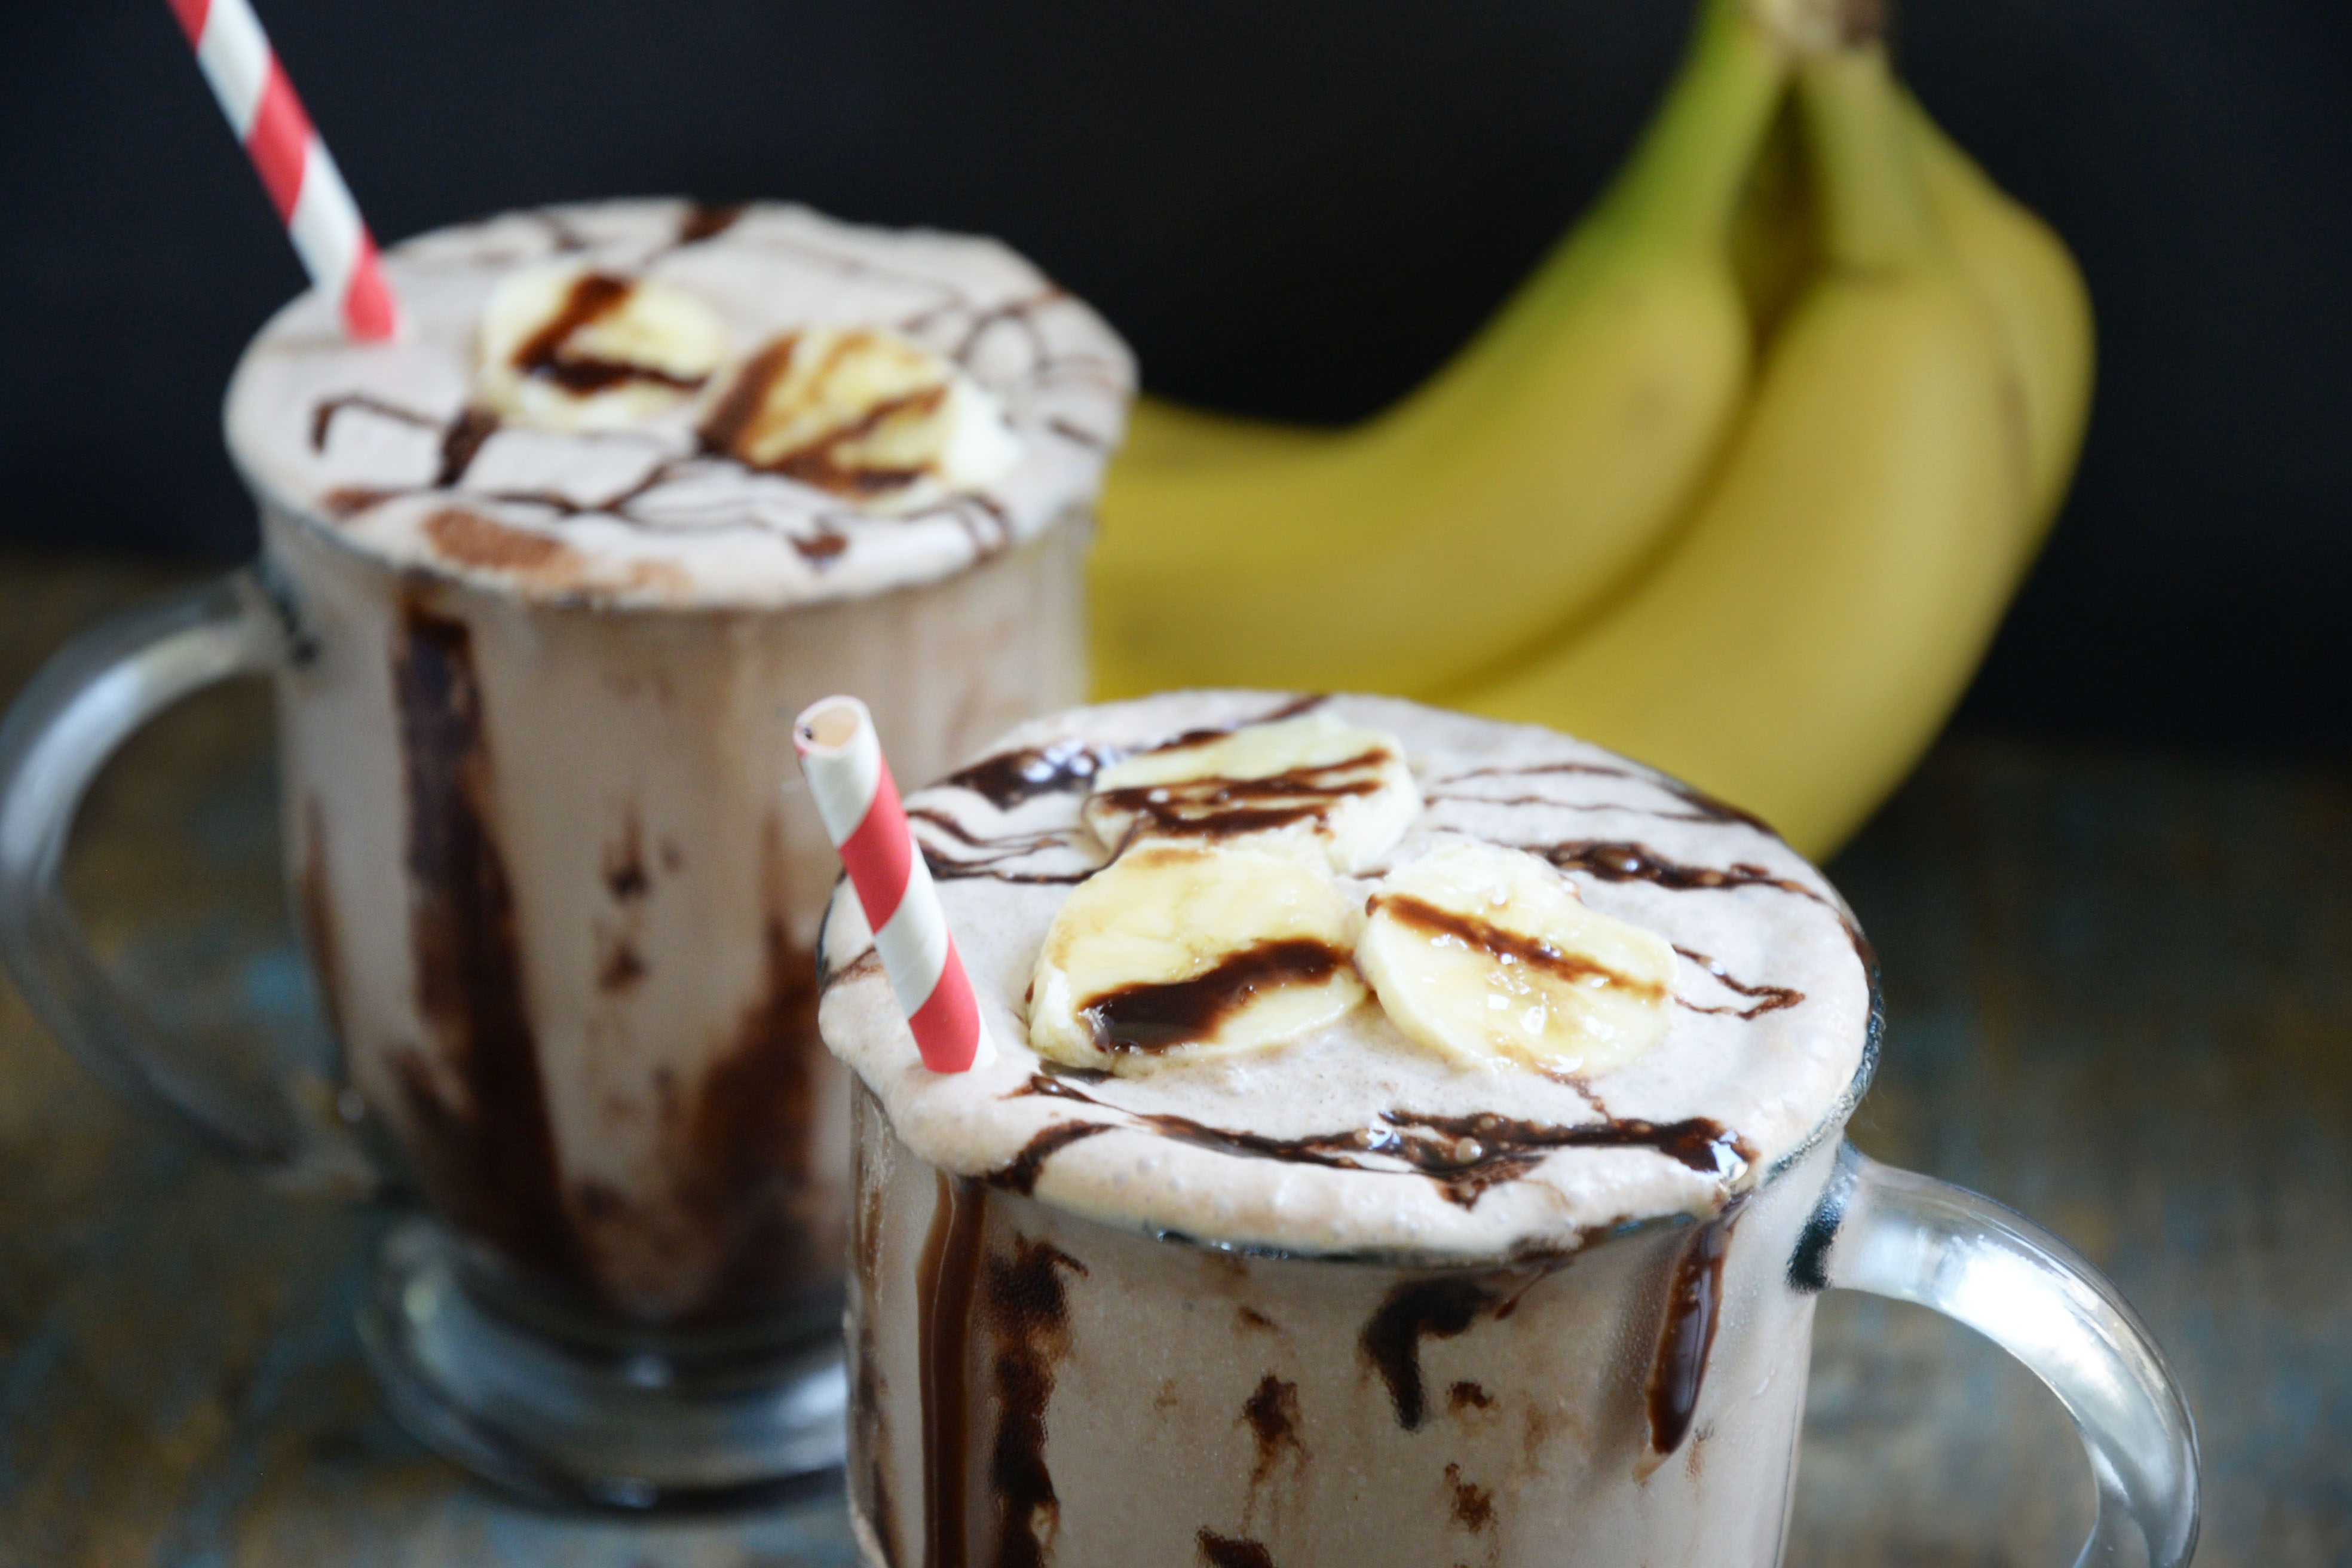 Banana Chocolate Milkshake Recipe (Low-Carb and Keto-Friendly)